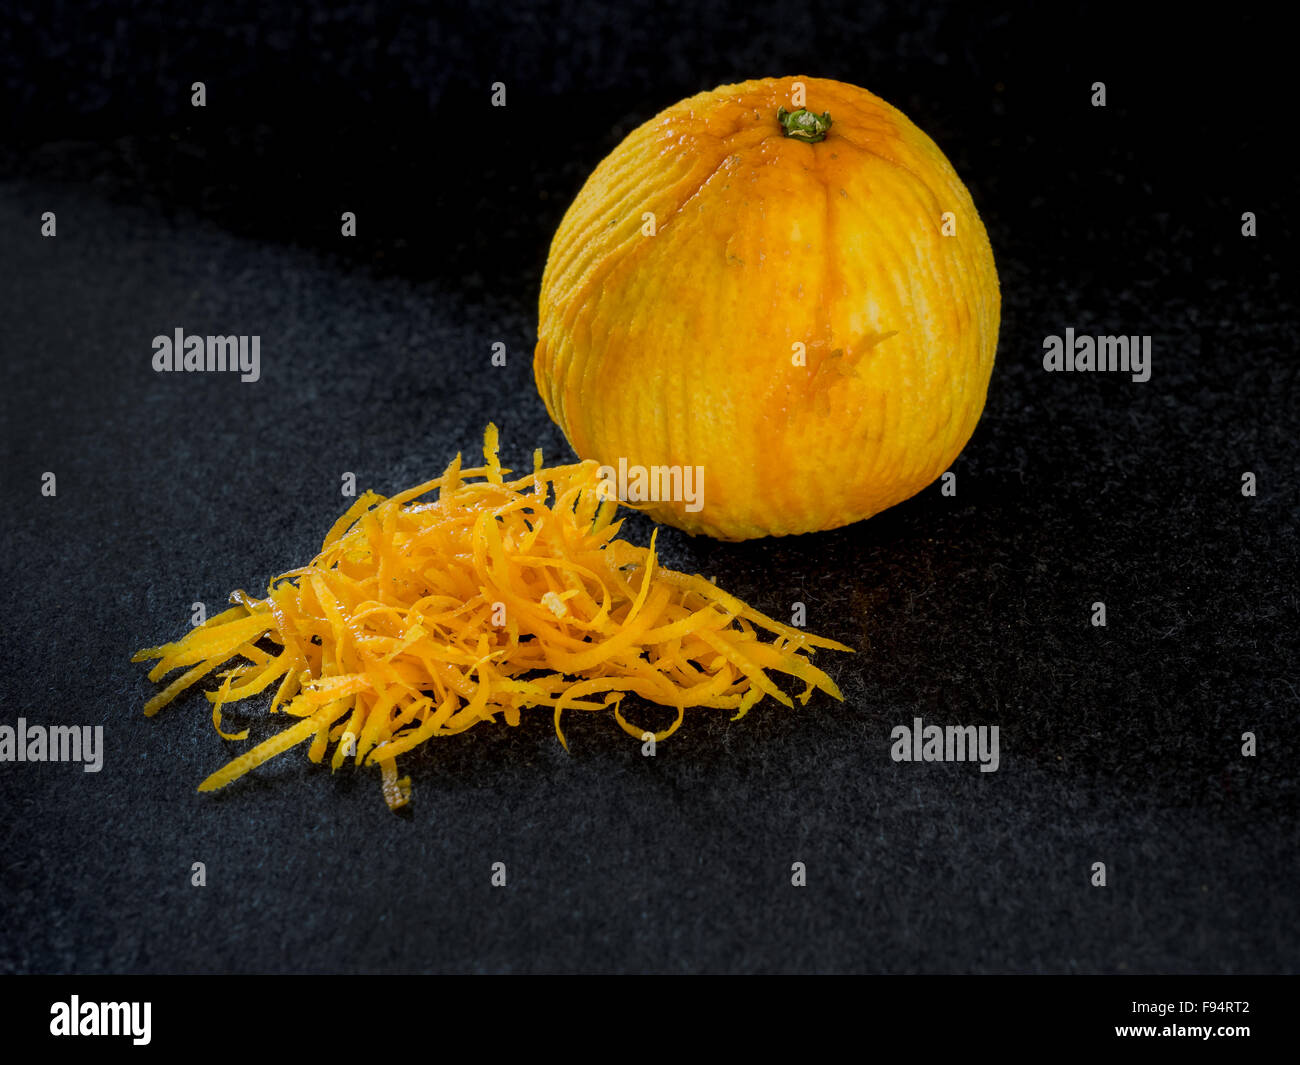 One ripe zested orange - Stock Image